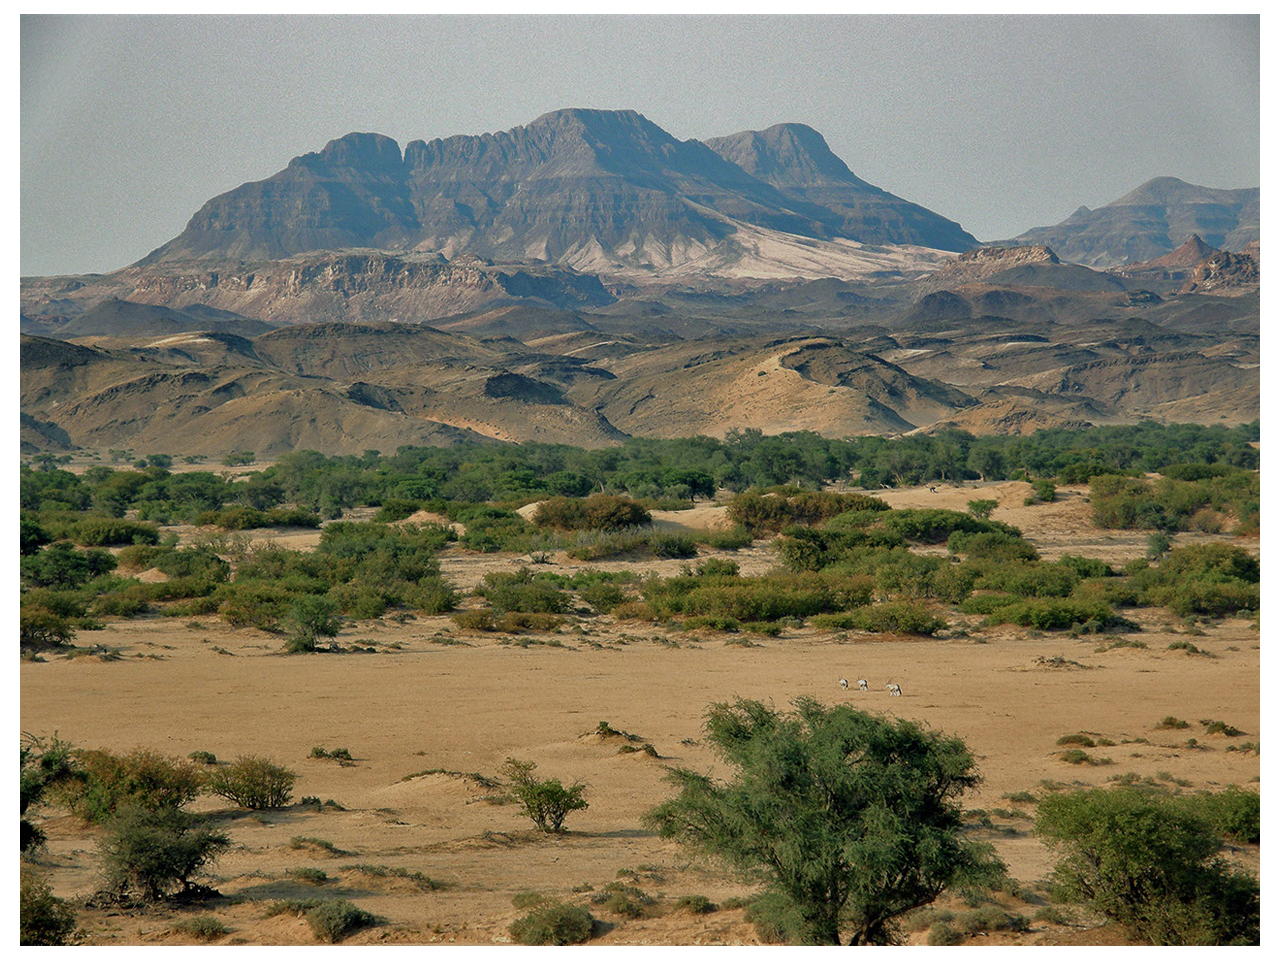 The Etendekas in Damaraland